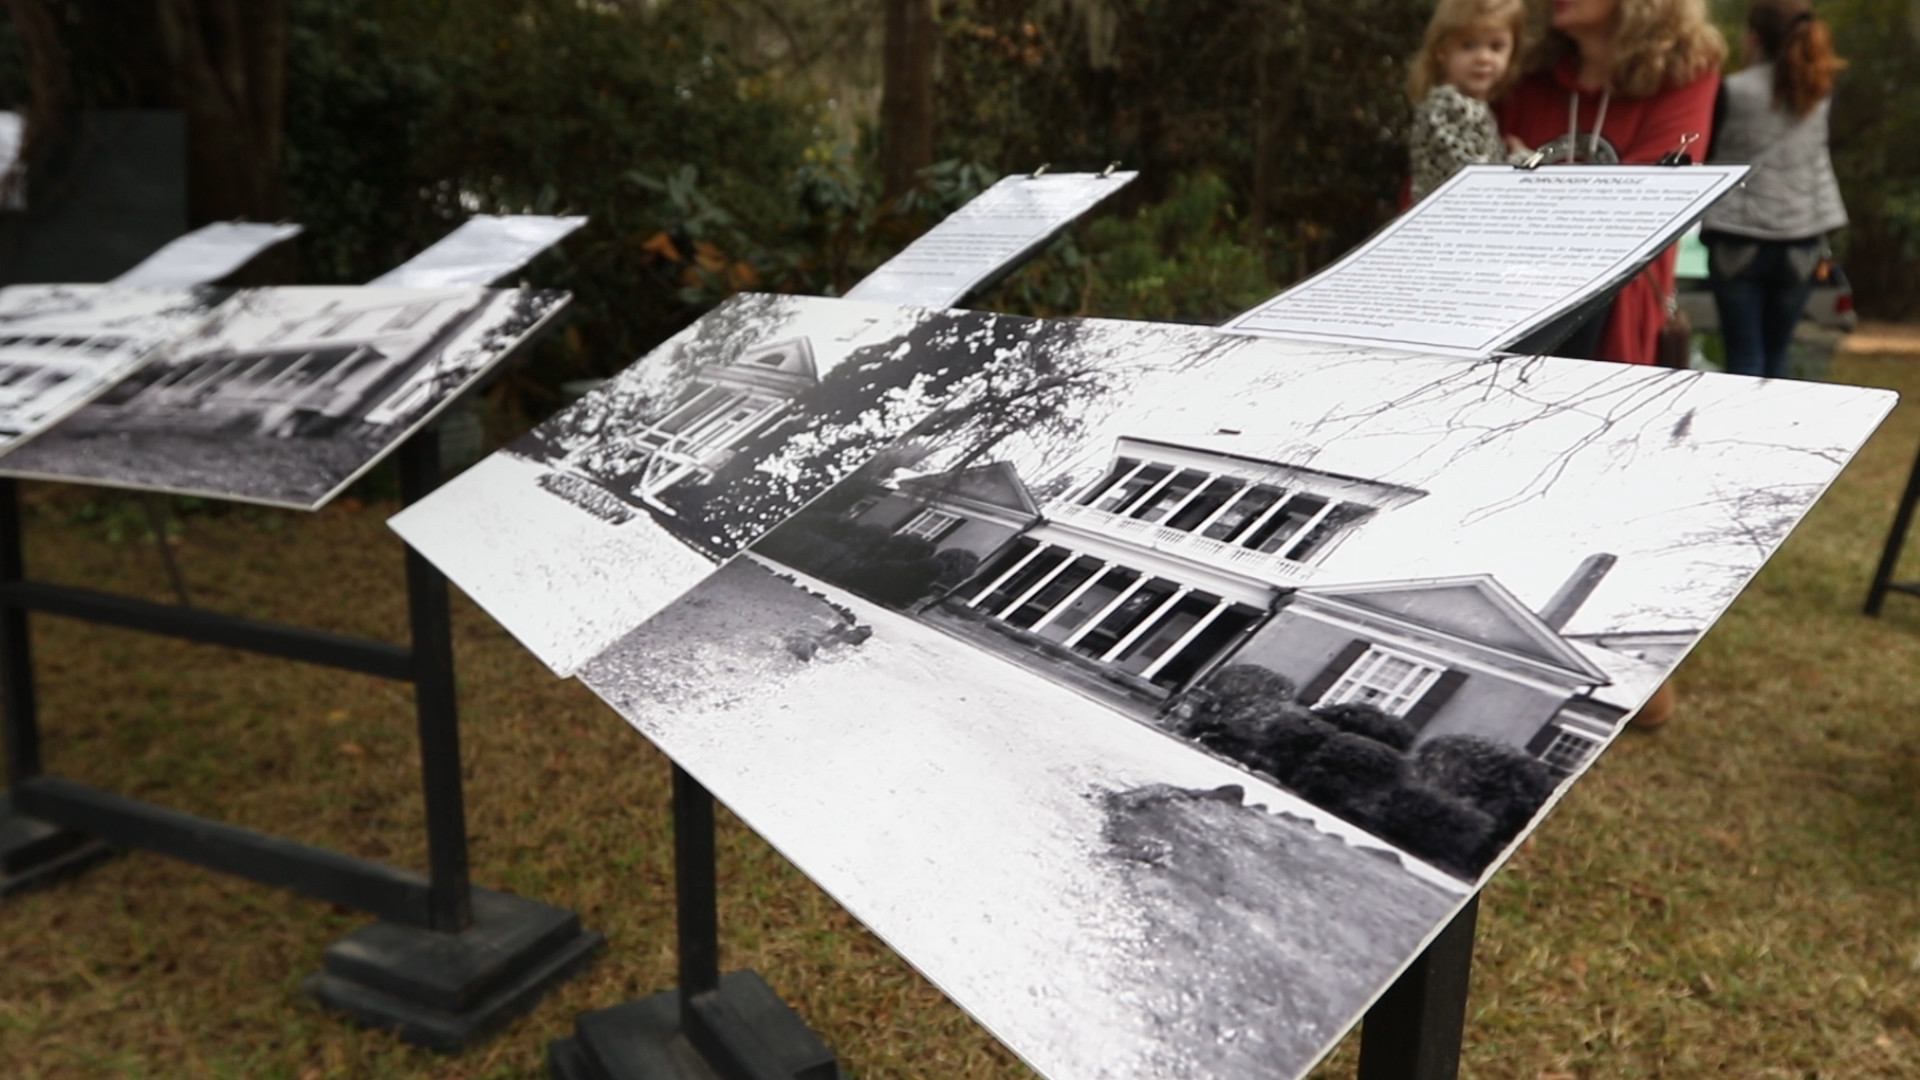 Vintage photos of the property are seen during the event.